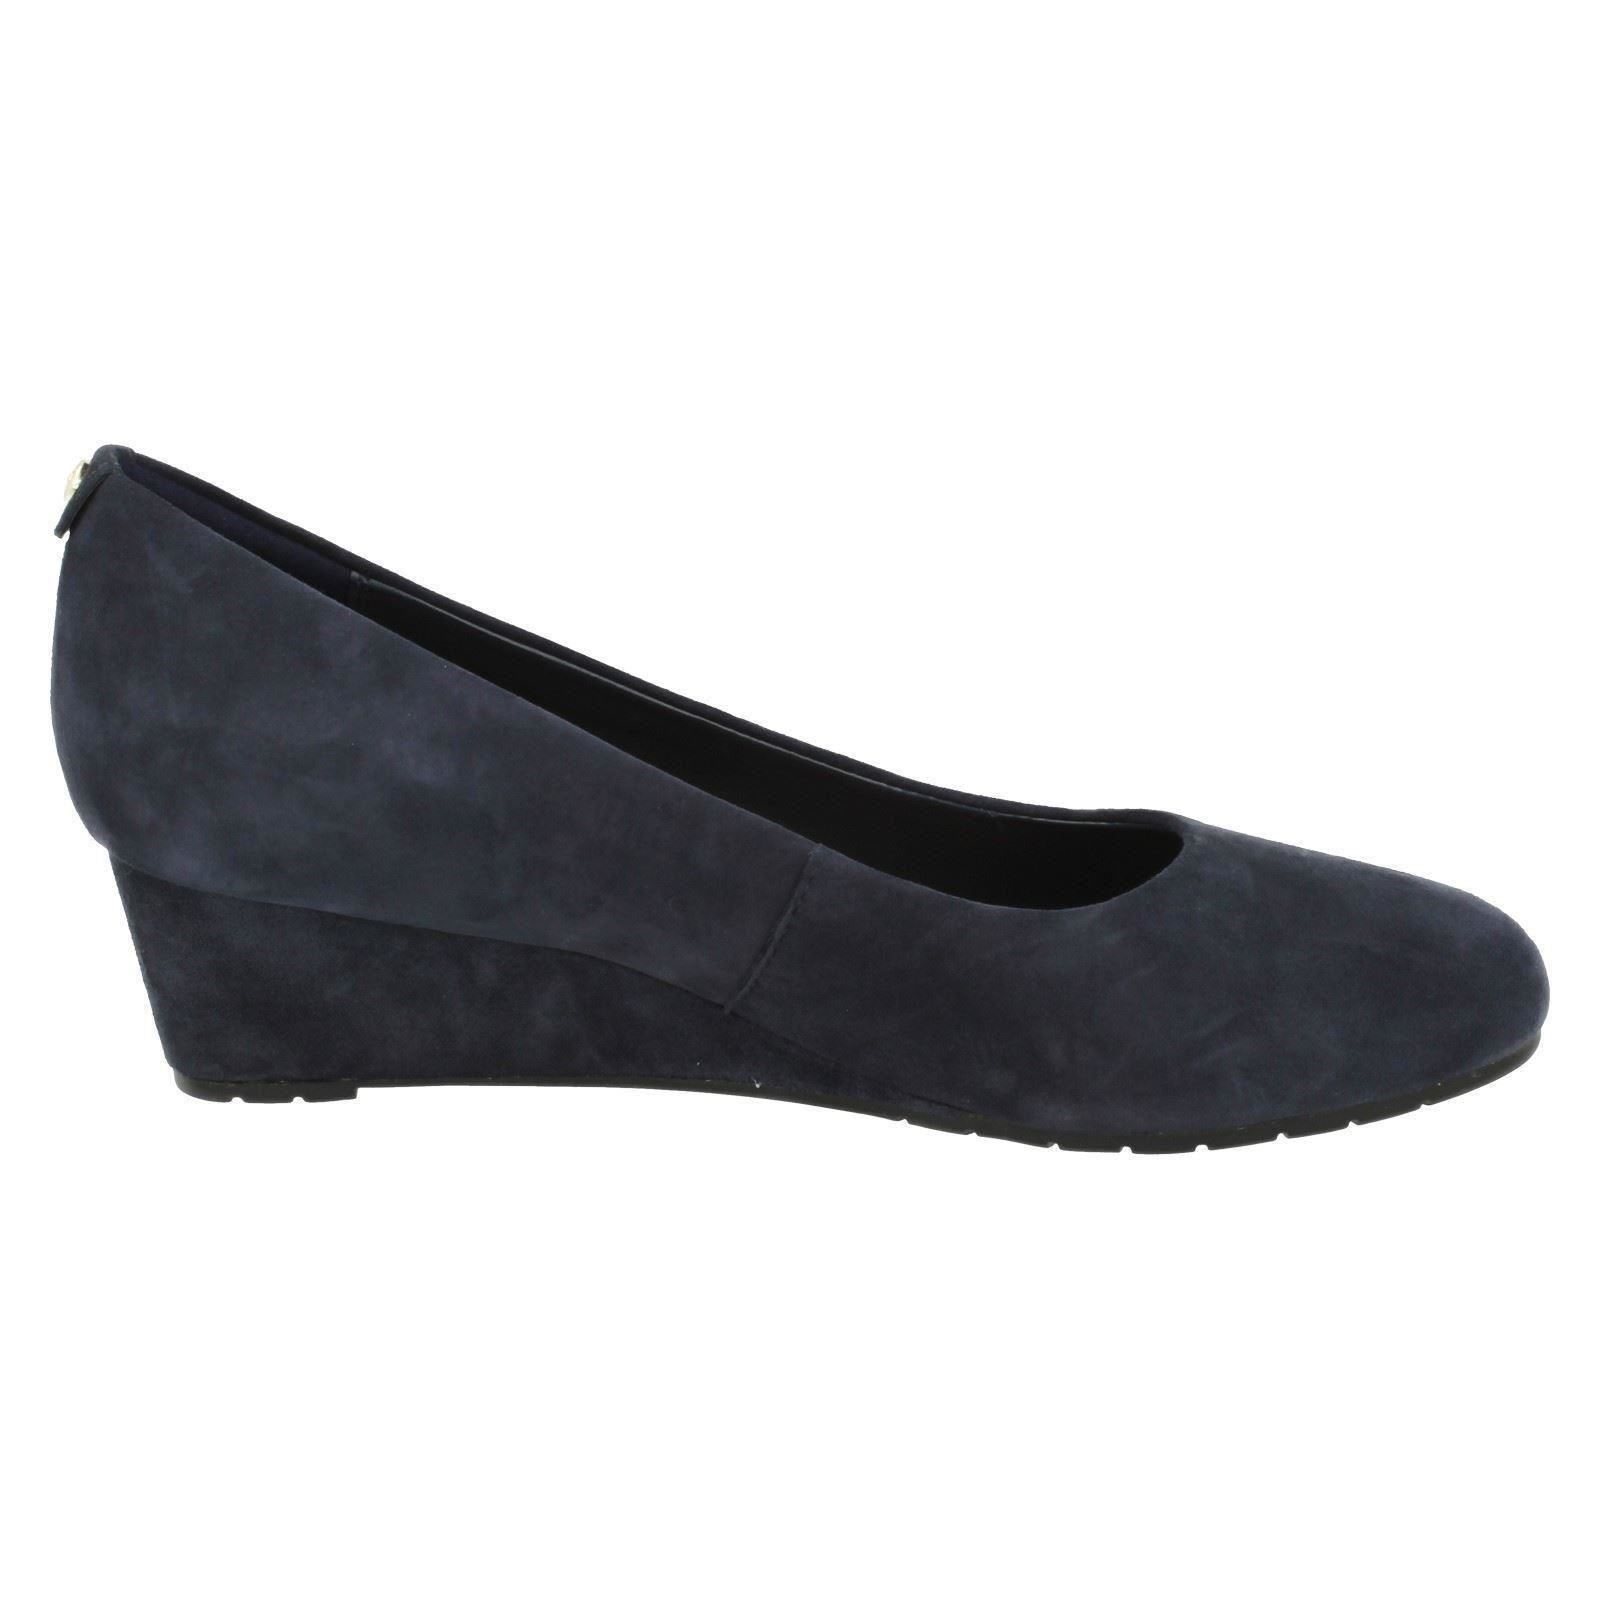 Ladies-Clarks-Low-Wedge-Court-Shoes-039-Vendra-Bloom-039